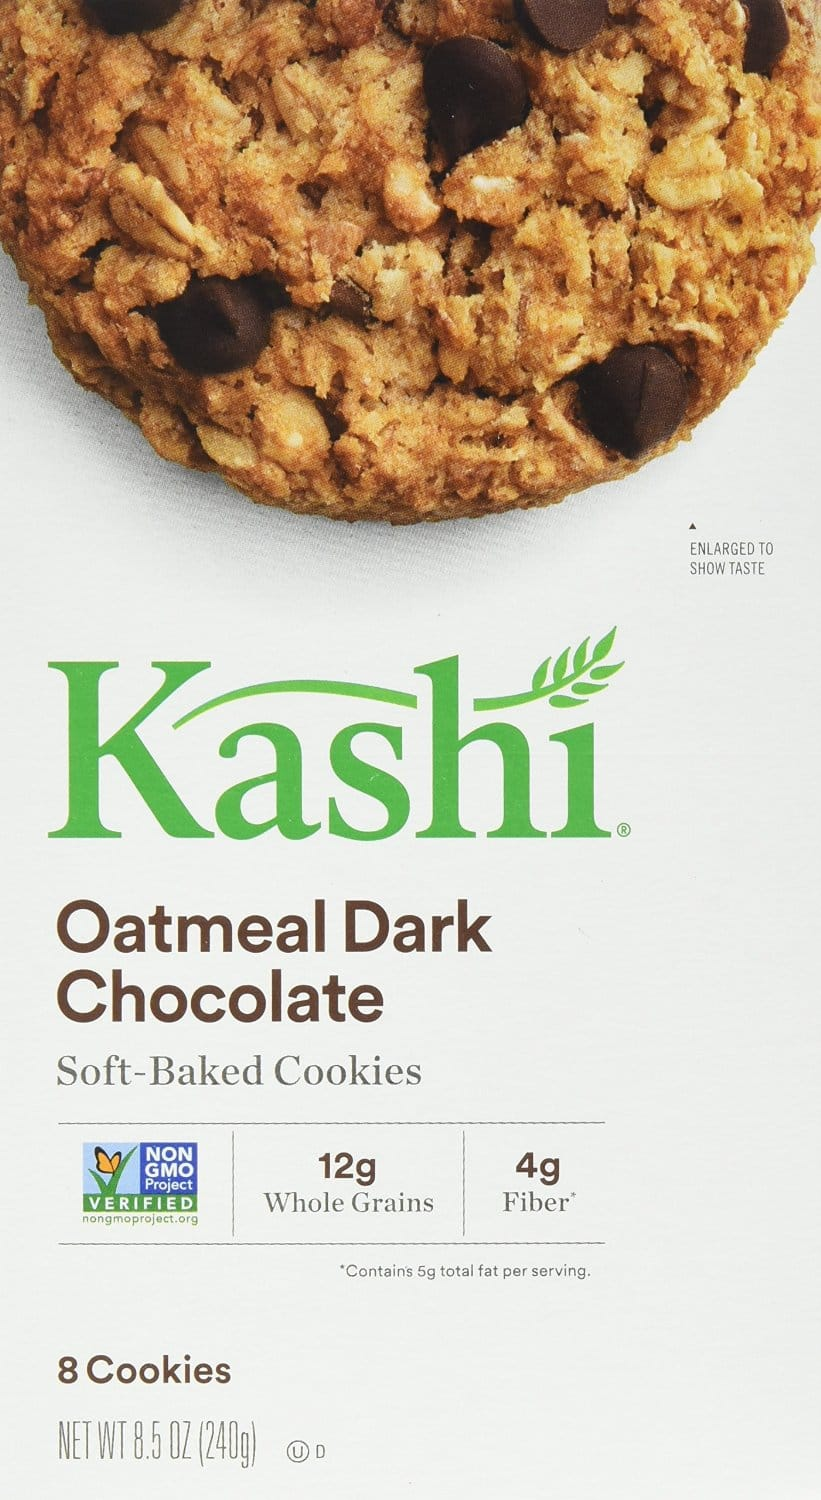 Kashi Cookies, Oatmeal Dark Chocolate, 8.5-Ounce Boxes (Pack of 3) $5.24